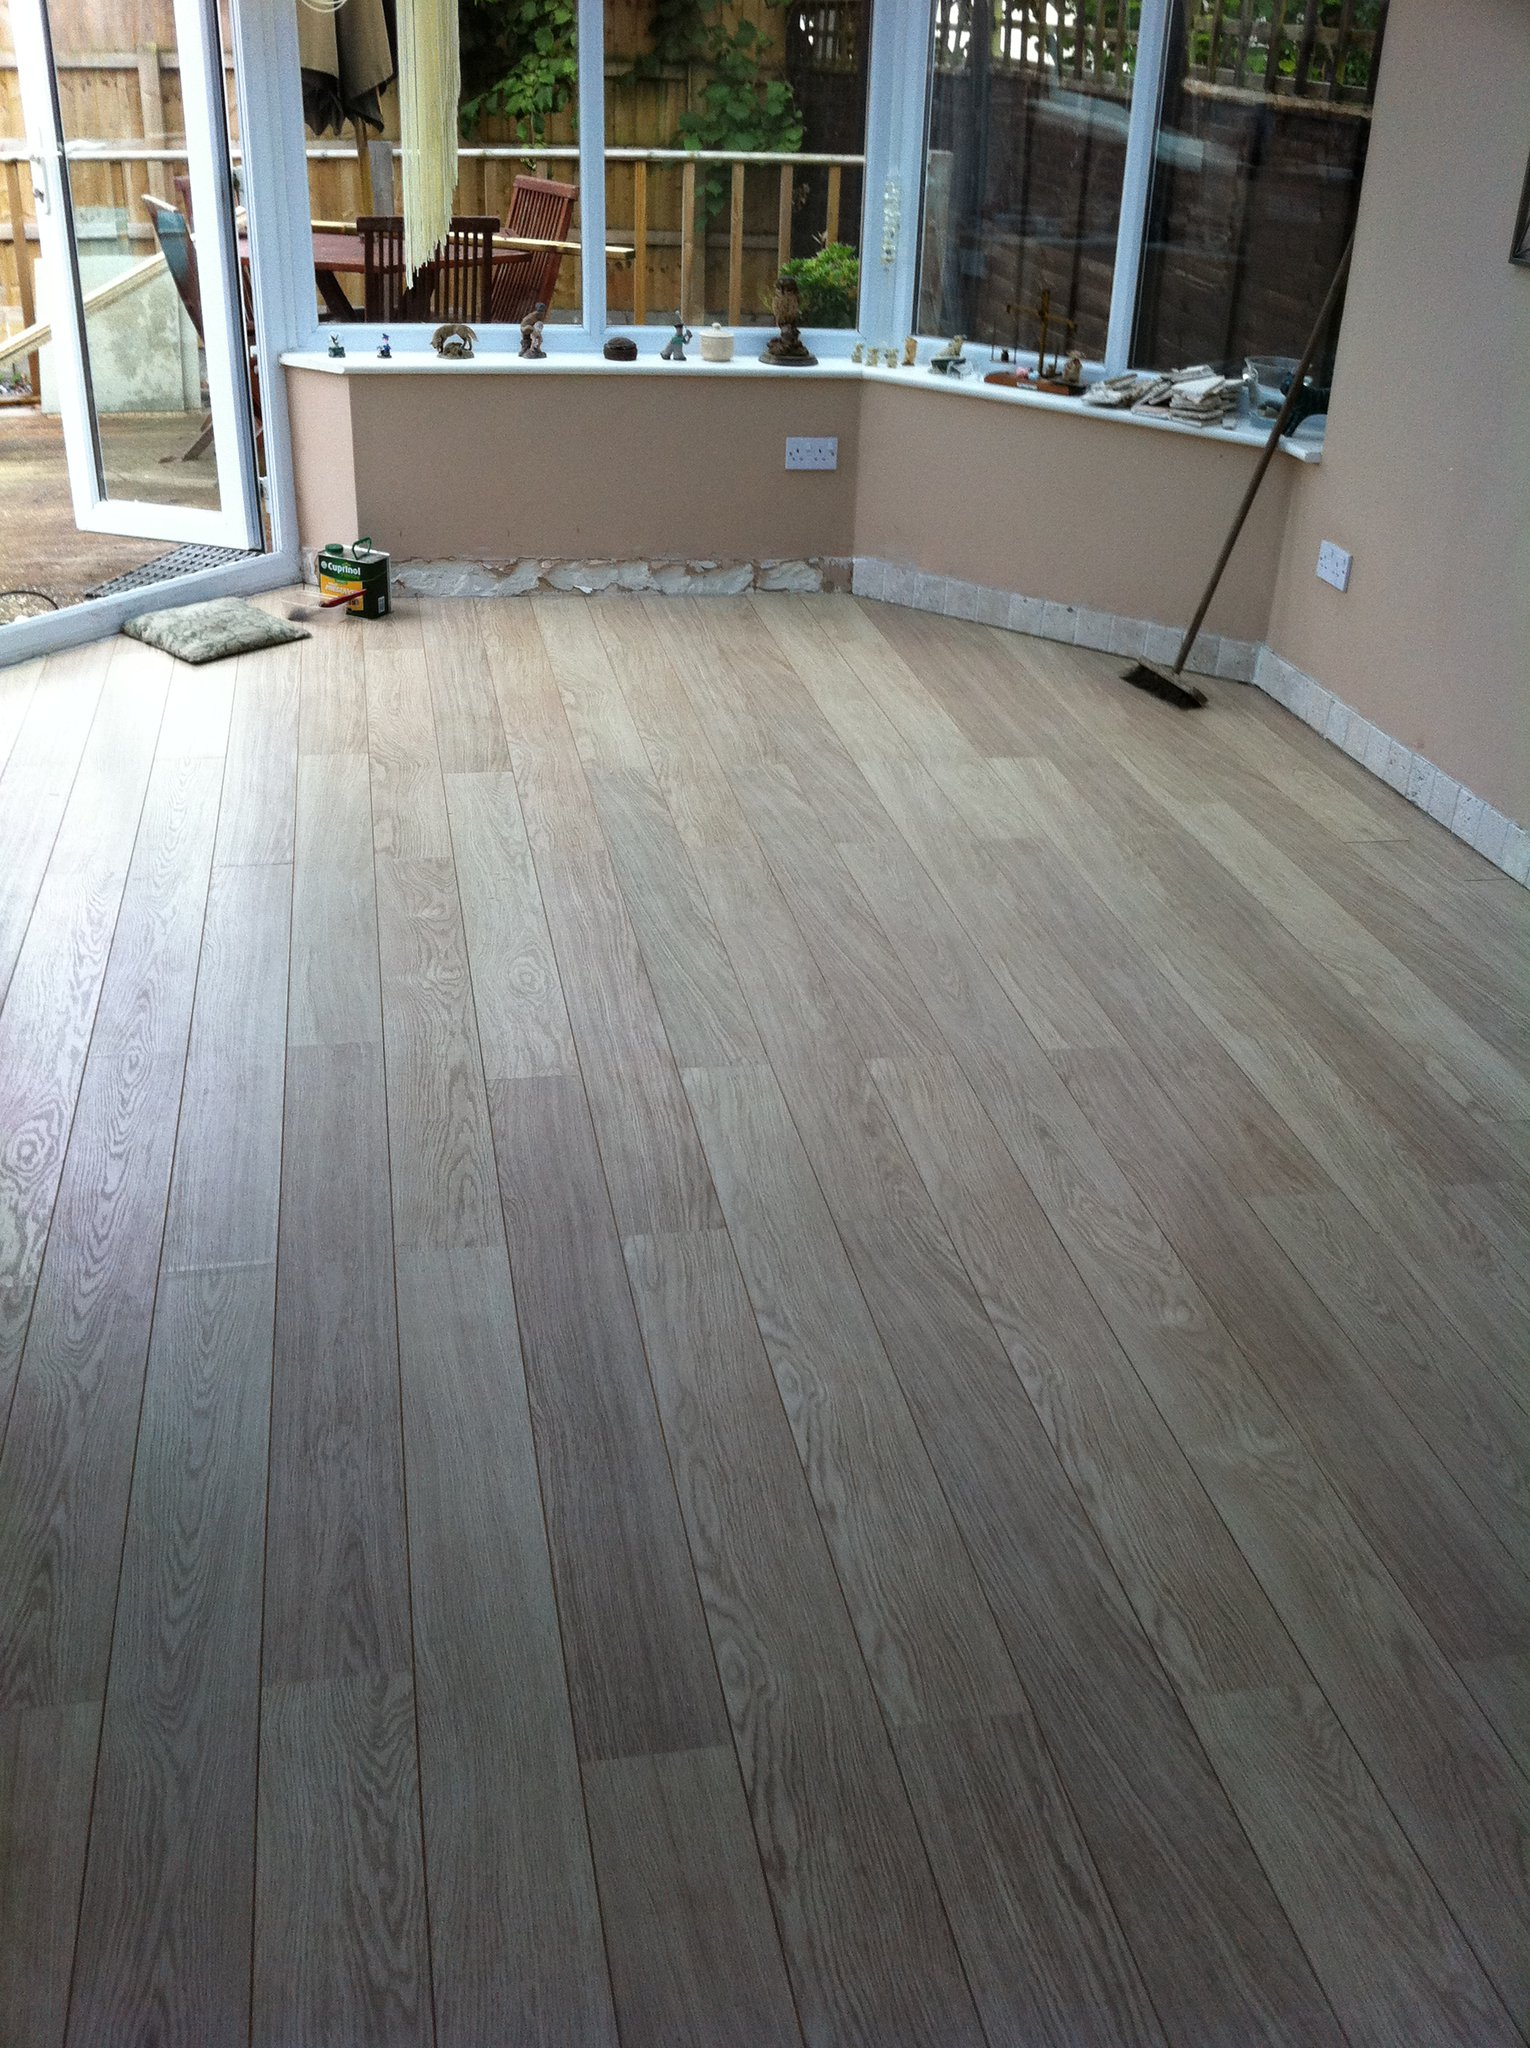 flooring woven services tanoa floor bamboo gallery strand installations natural advanced